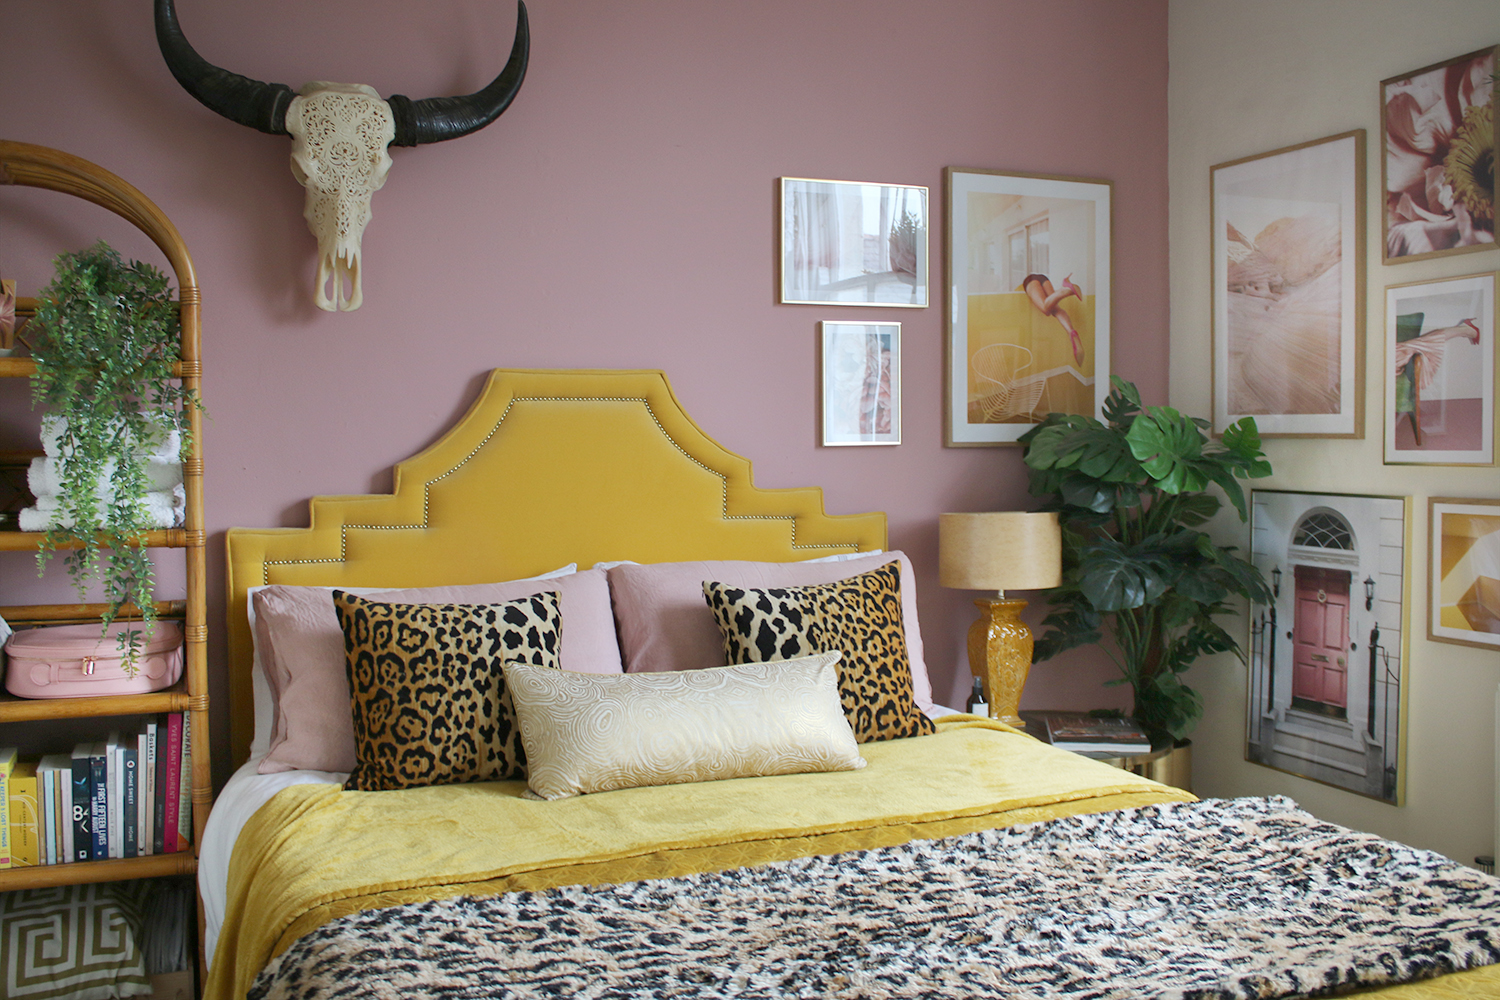 Pink and yellow bedroom with gallery wall and vintage rattan shelving unit